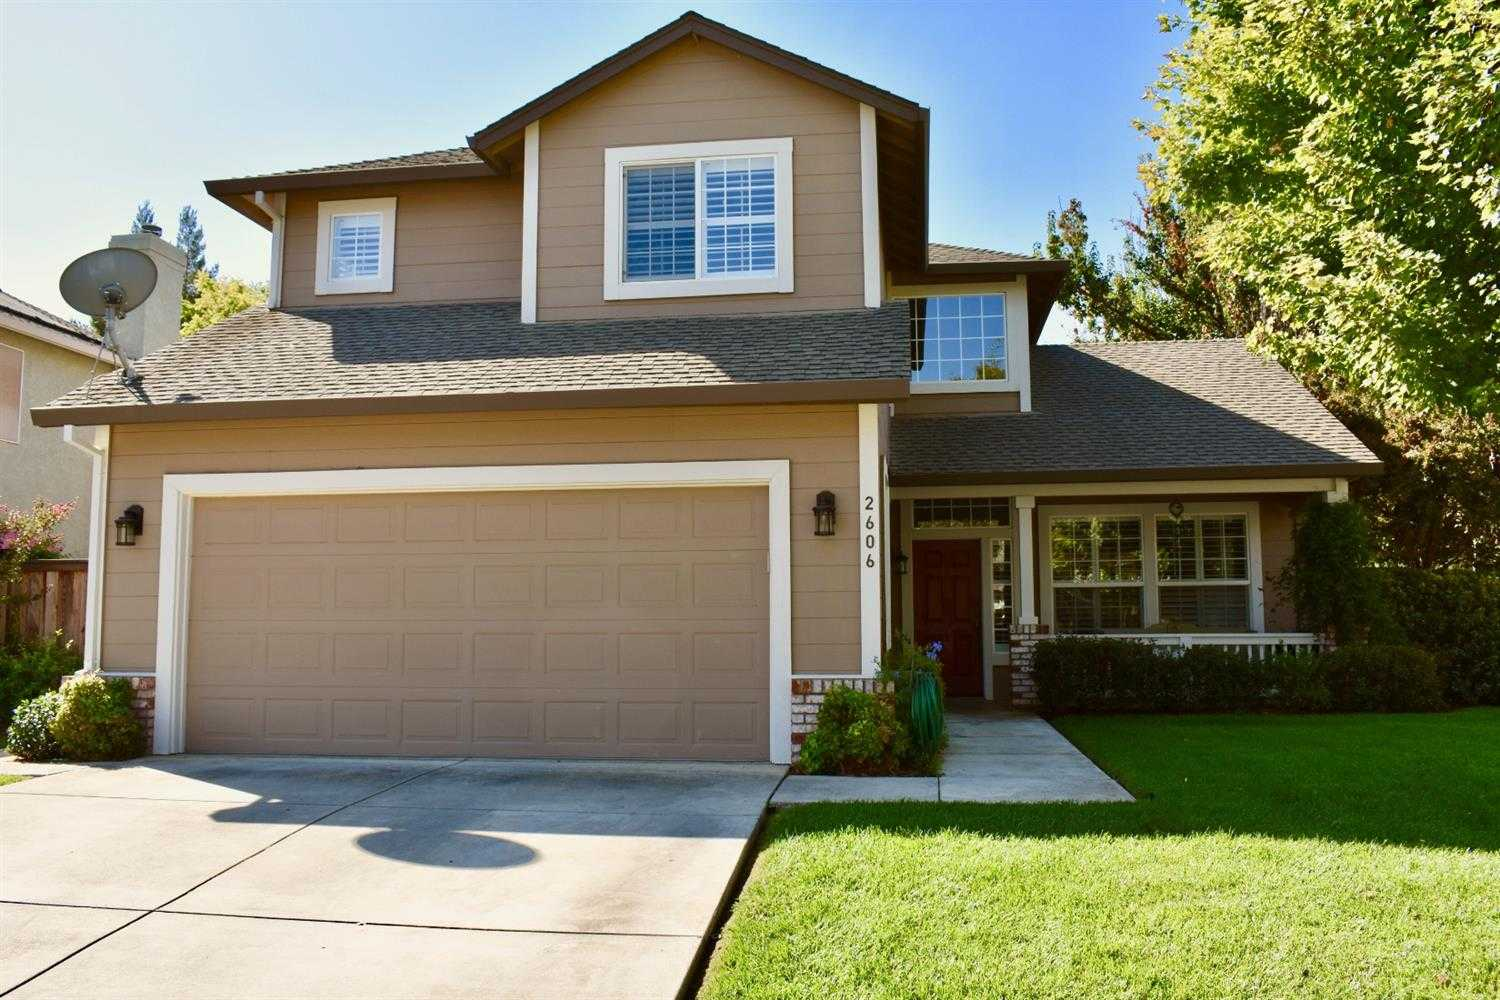 $765,000 - 5Br/3Ba -  for Sale in Davis